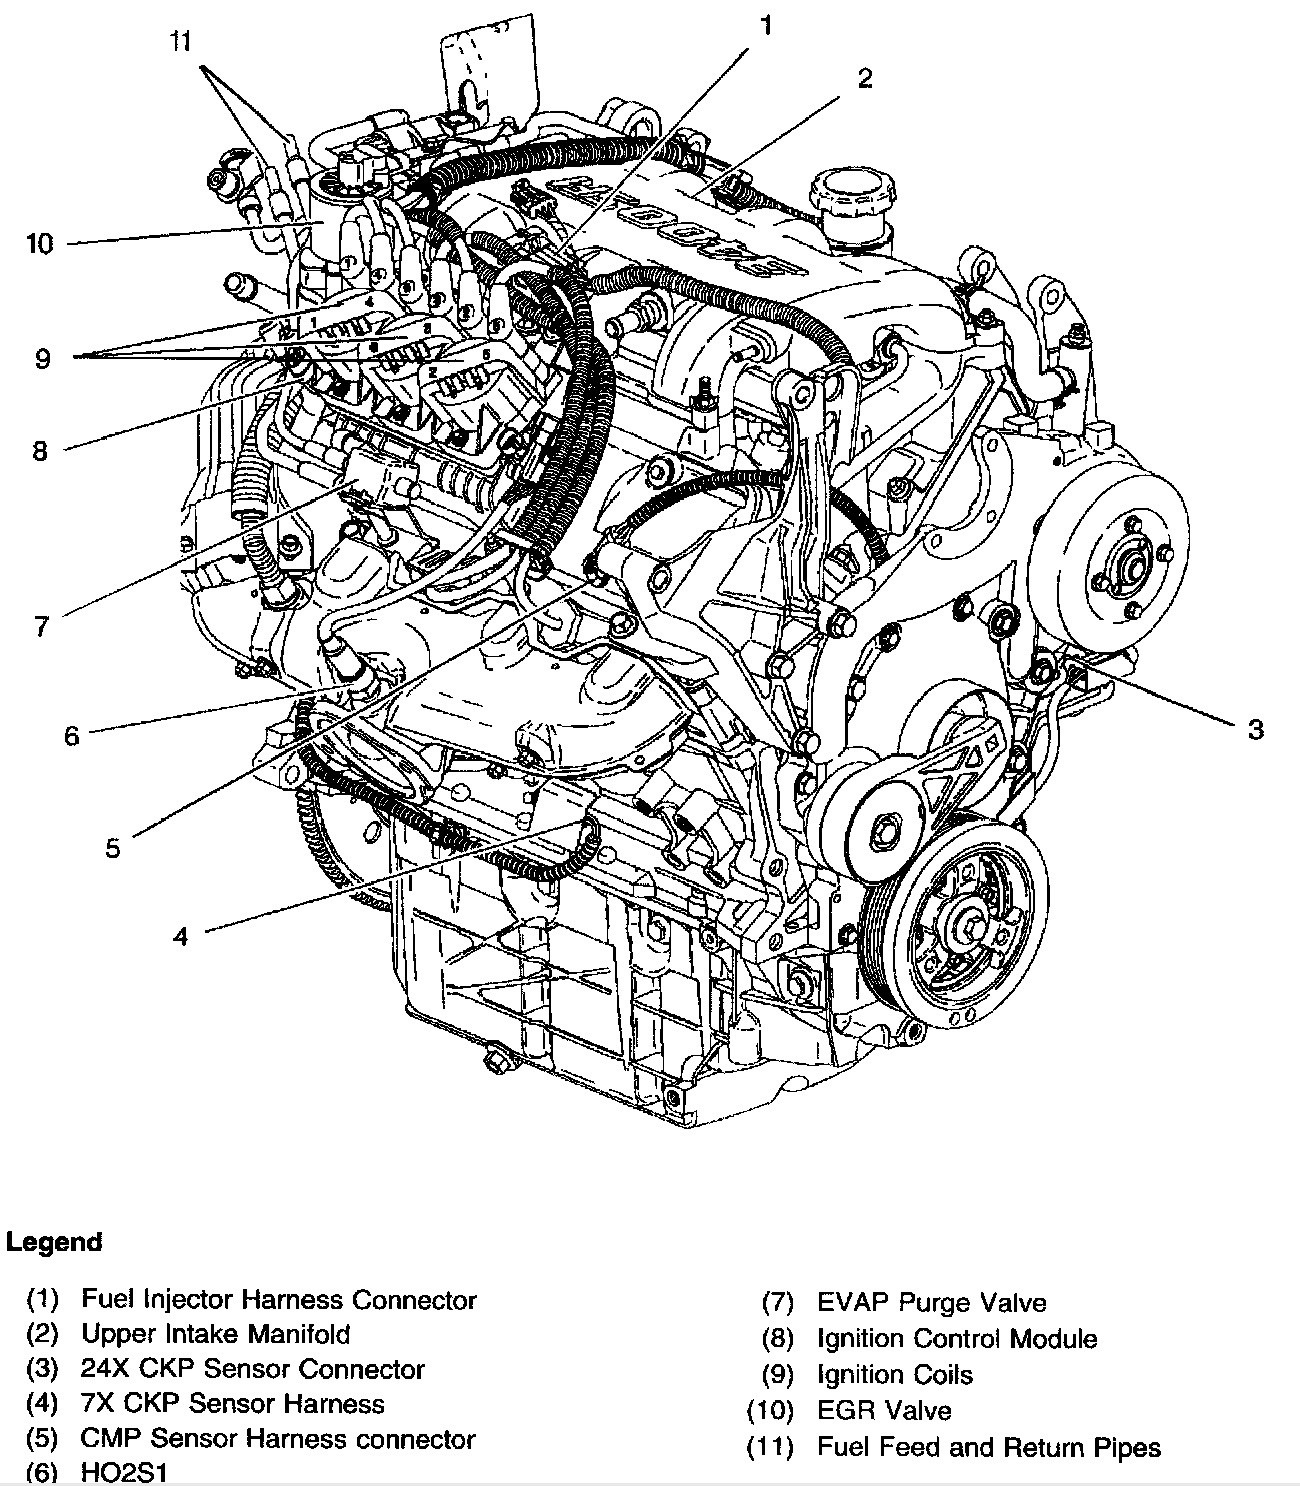 ford 3 8 v6 engine diagram 98 camaro engine diagram wiring diagram data  camaro engine diagram wiring diagram